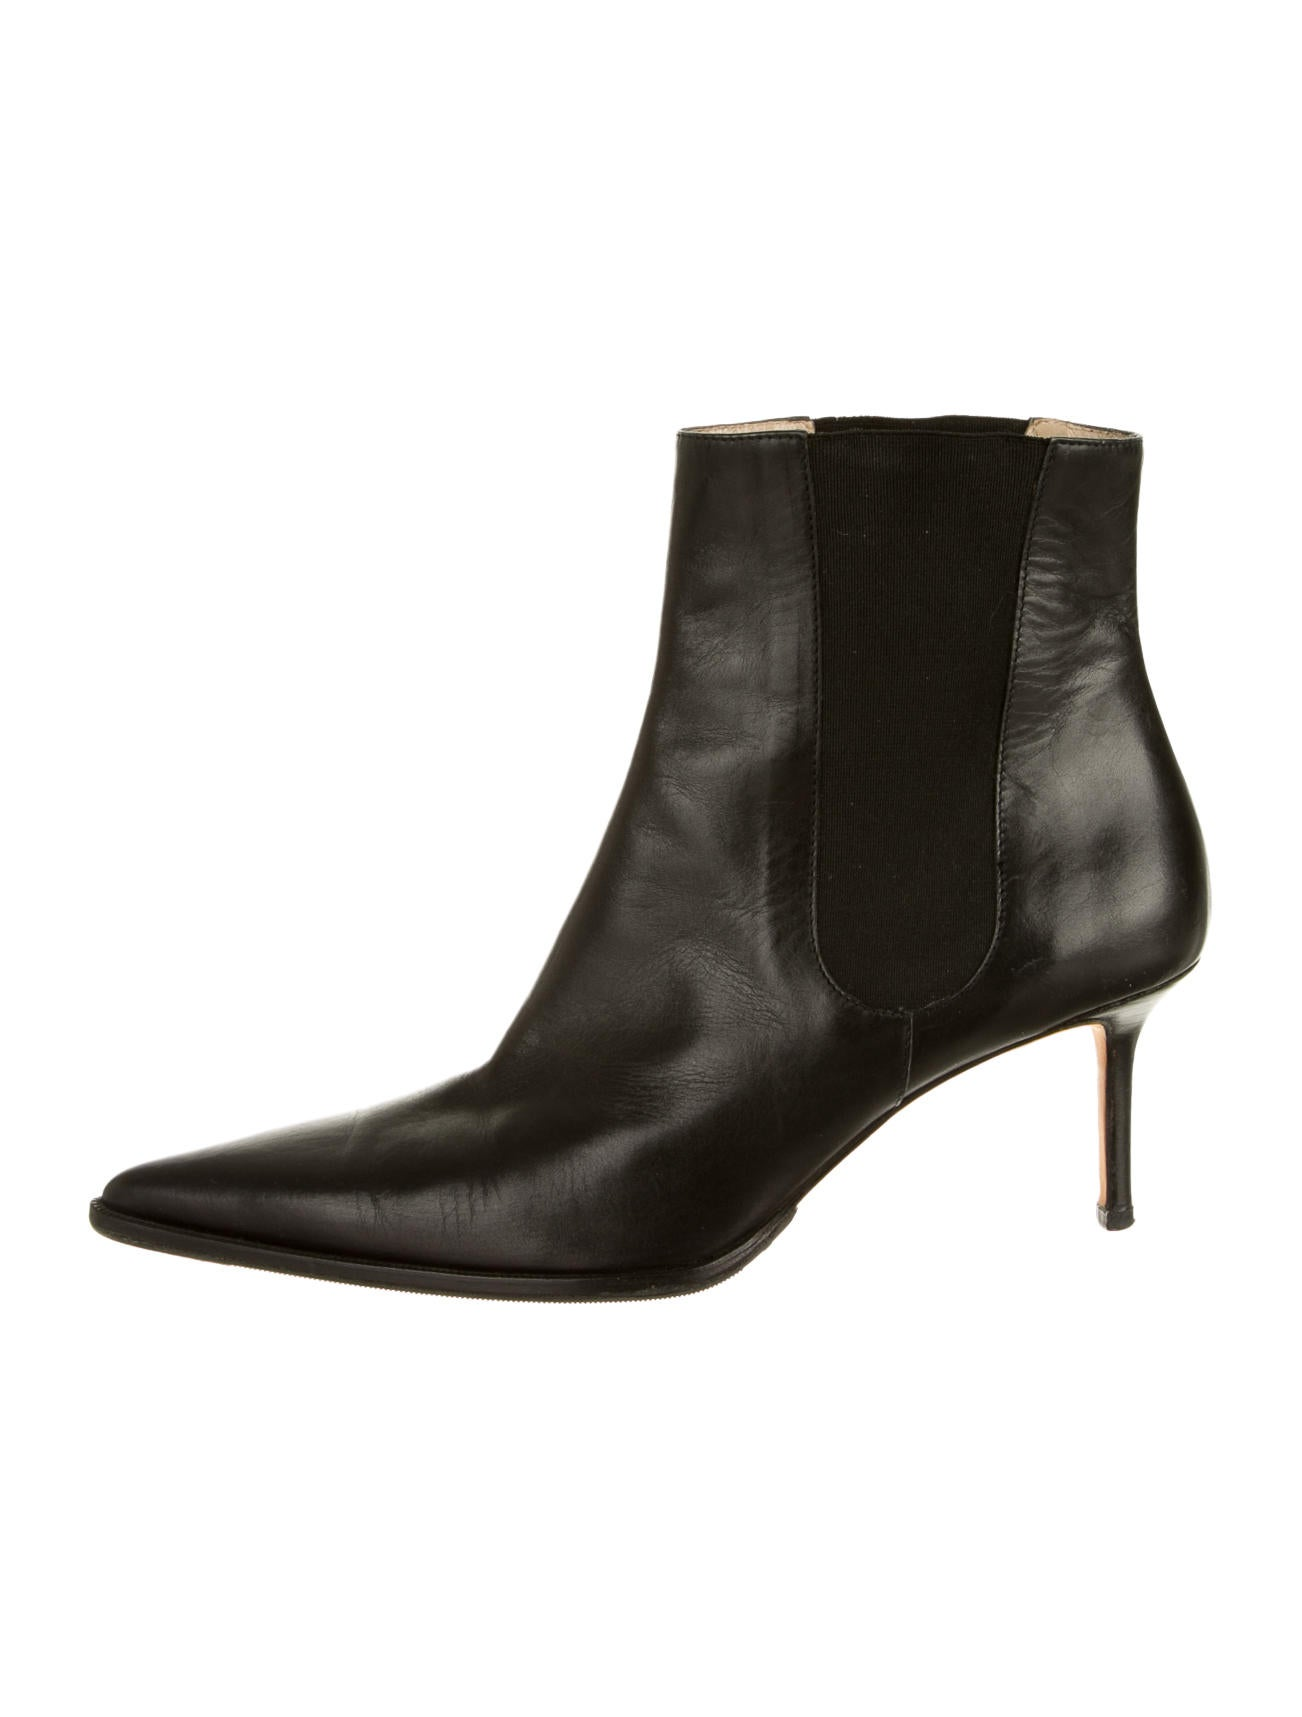 michael kors ankle boots shoes mic25396 the realreal